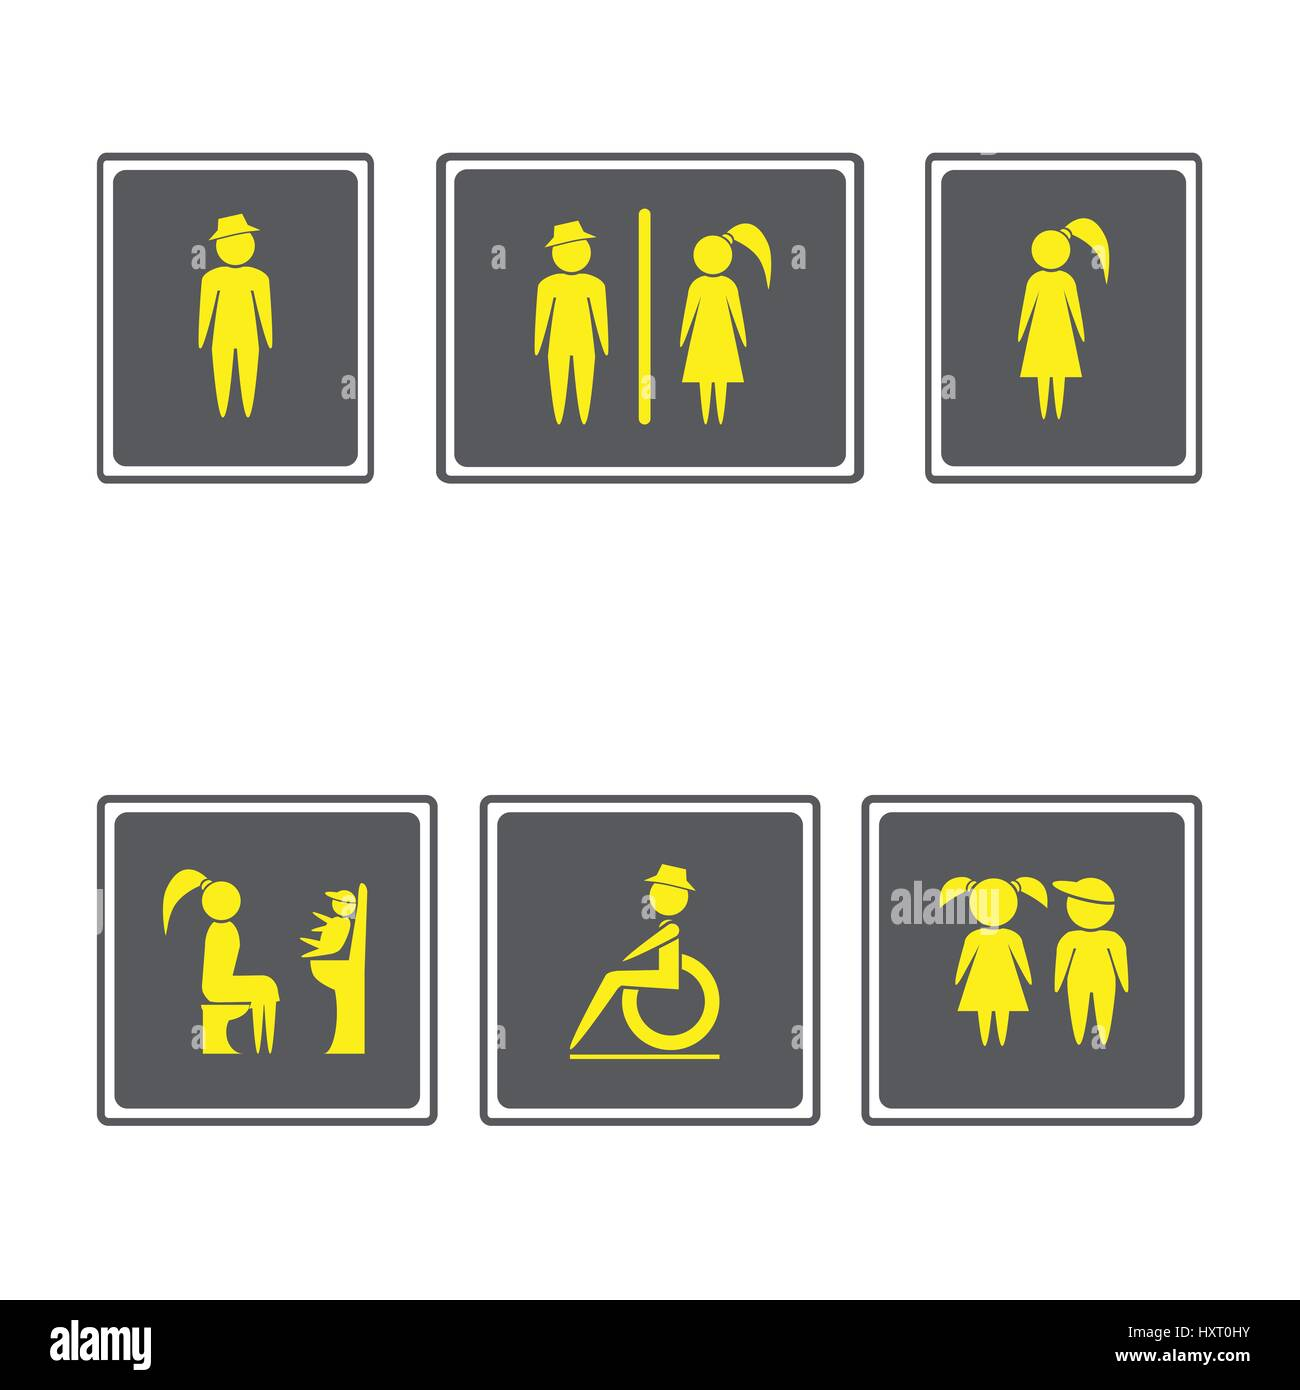 Toilet Signs Restroom Signboardsy And Girl Iconn And Woman